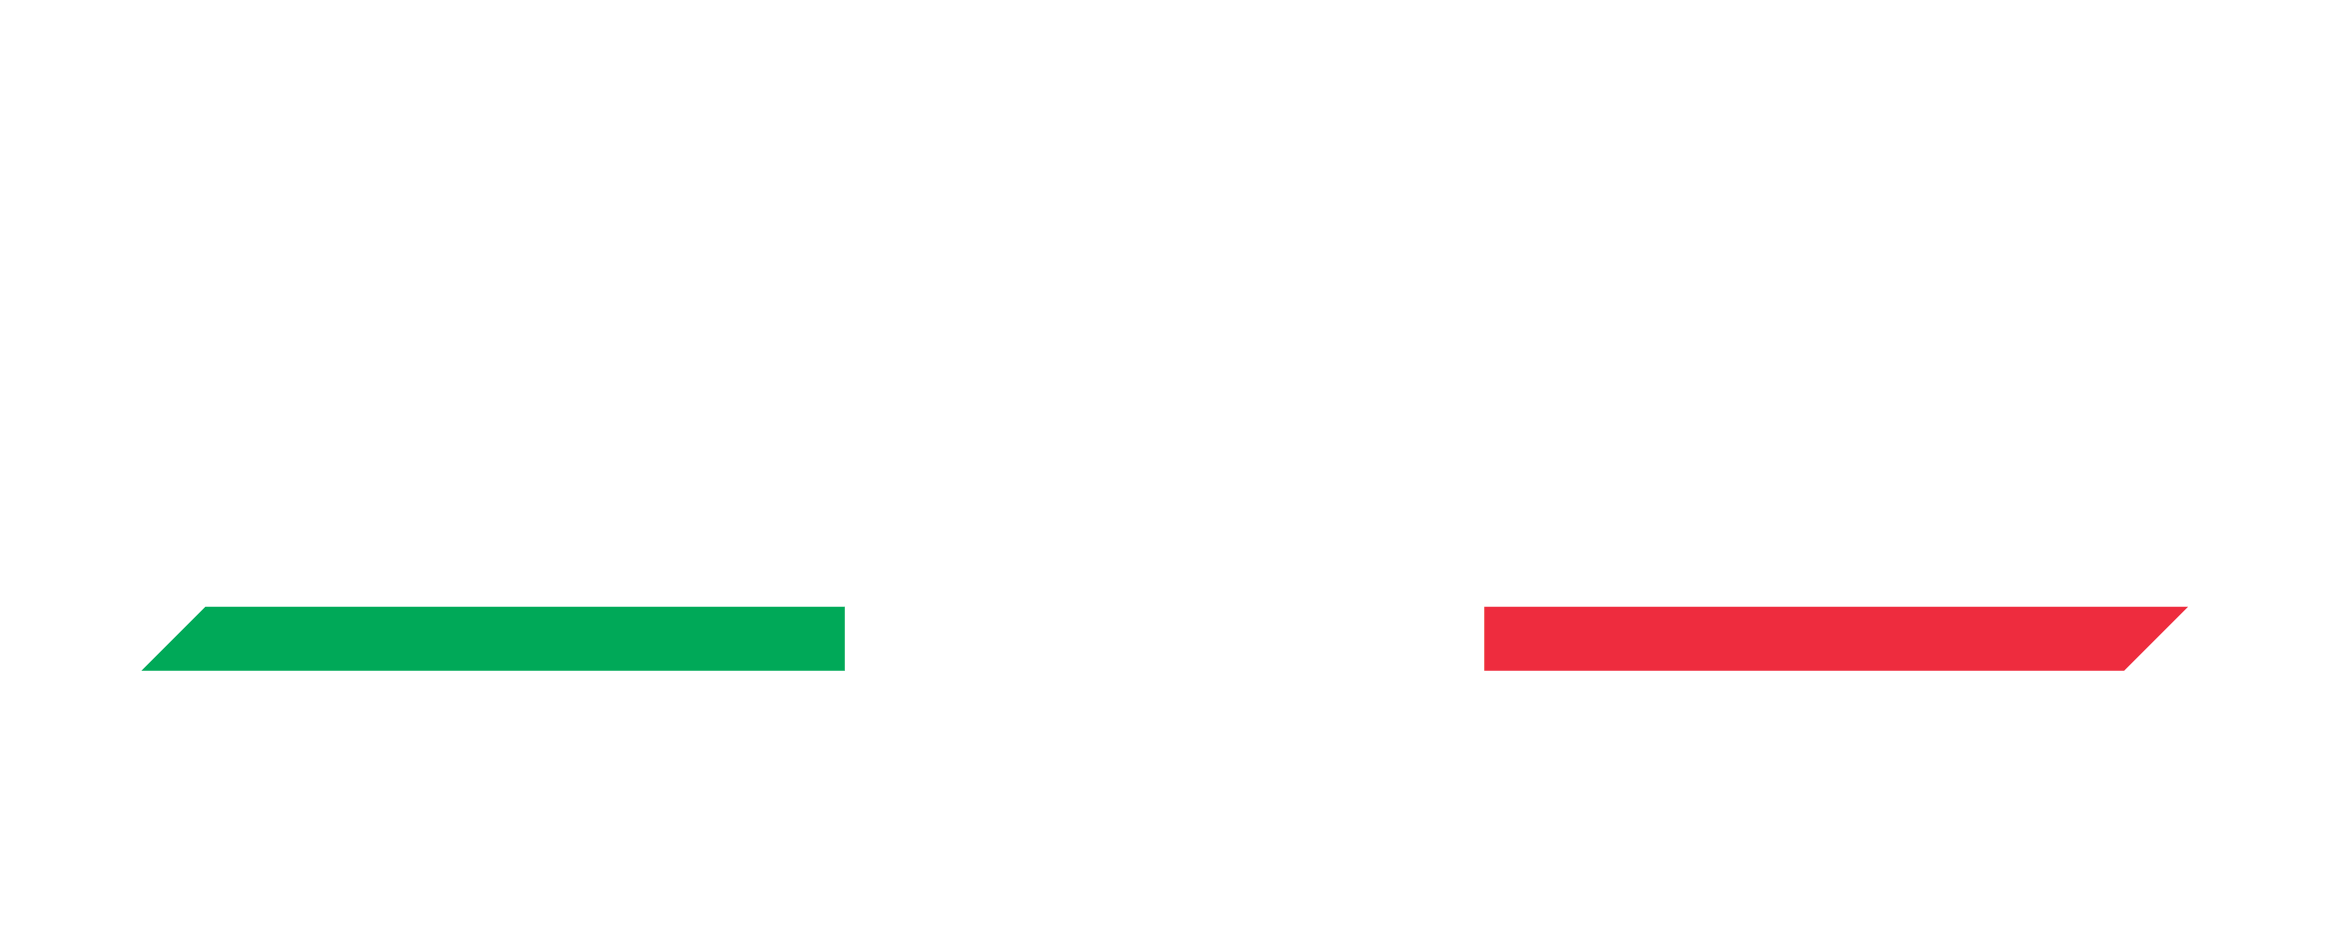 Picetti Implementos